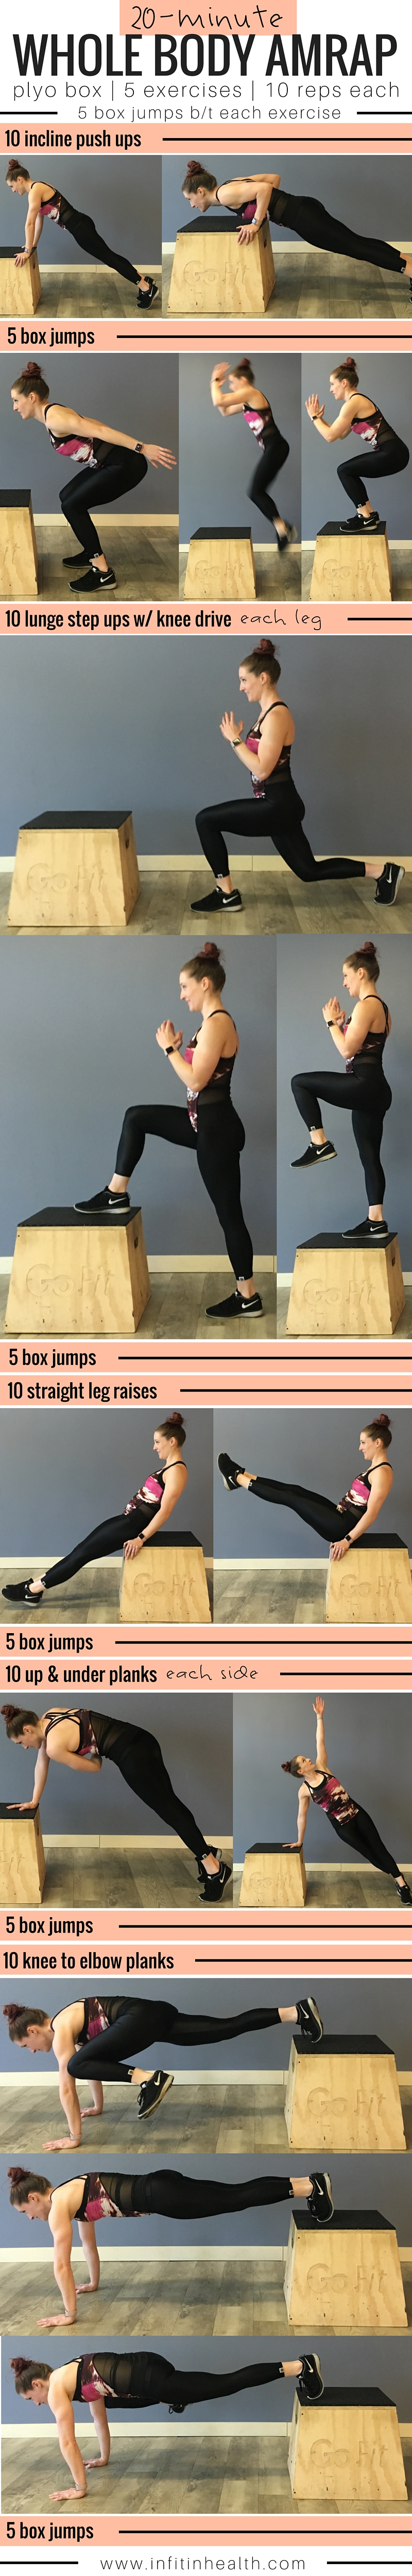 20-Minute Whole Body AMRAP (on a Plyo Box)